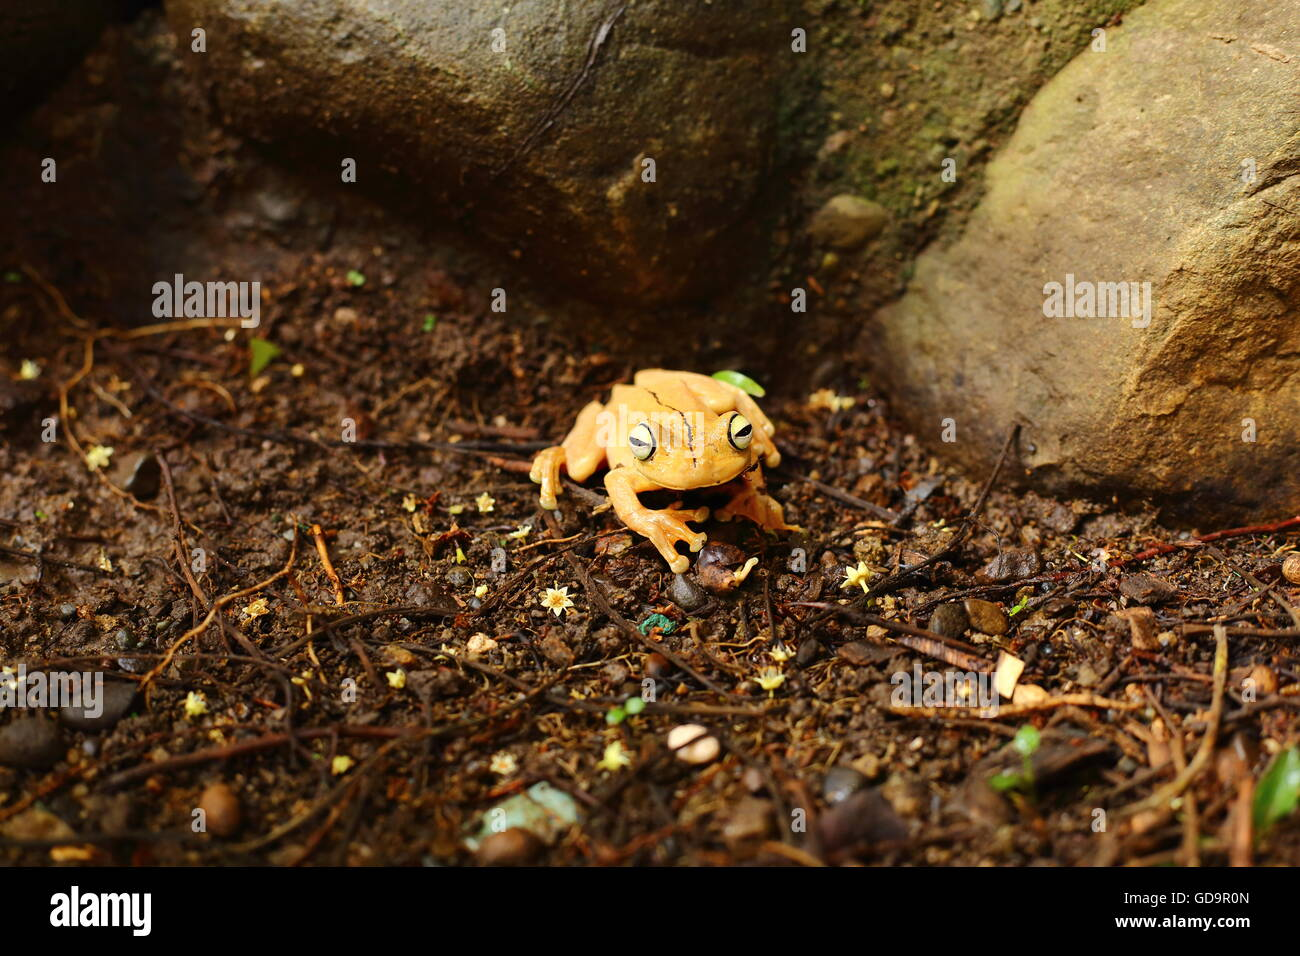 Gladiator tree frog on the jungle floor - Stock Image